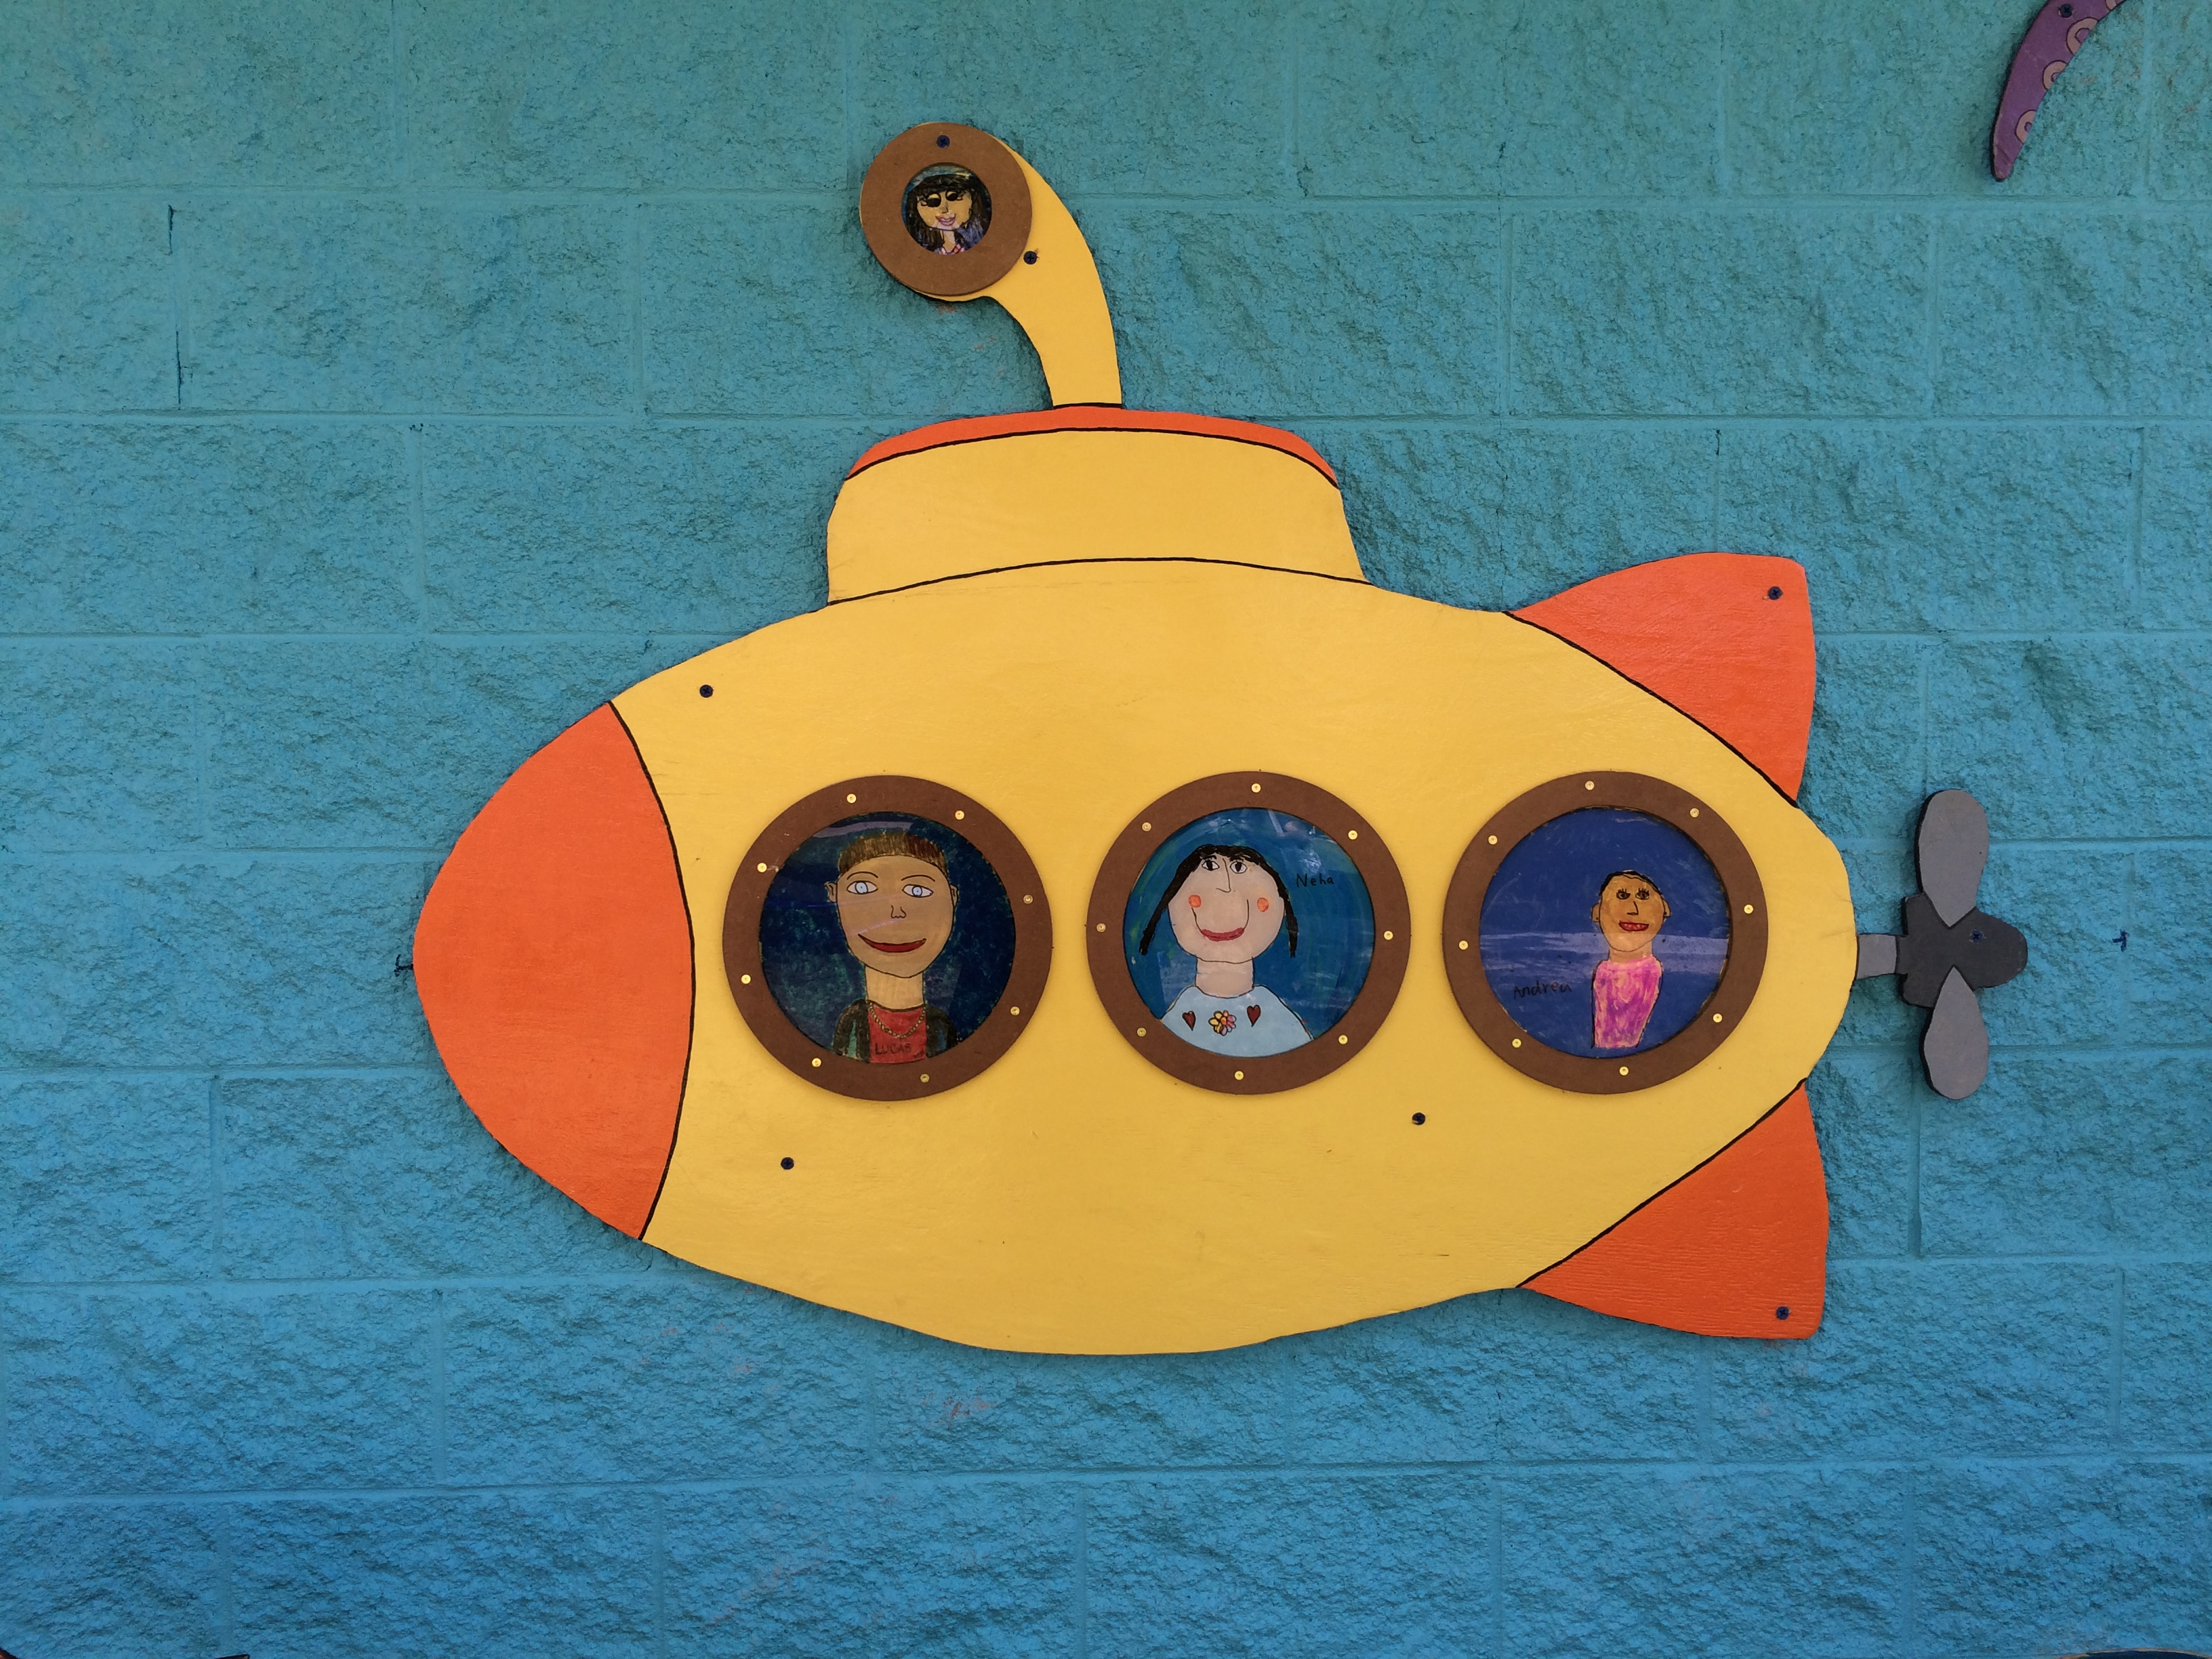 Submarines with student portraits